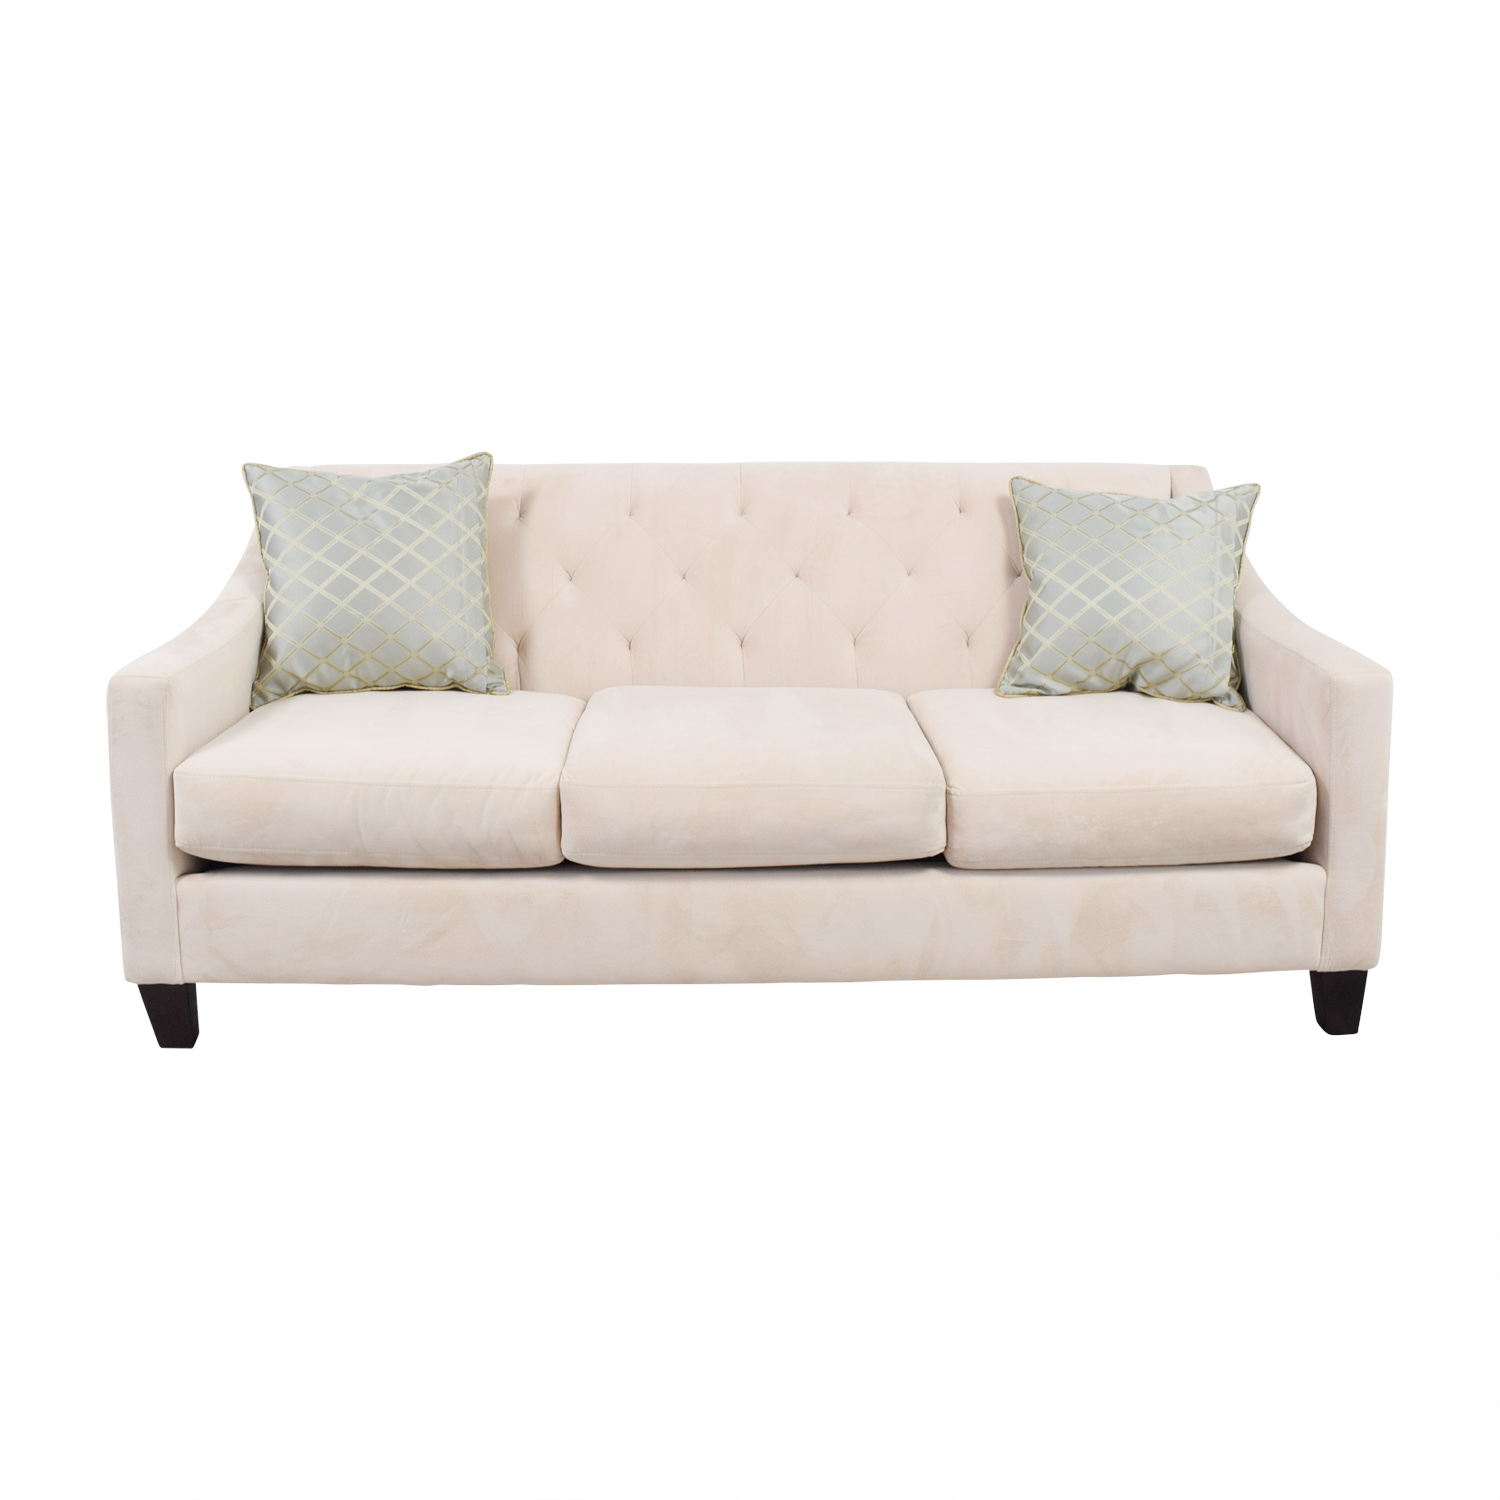 Max Home Max Home Beige Semi-Tufted Three-Cushion Couch nyc